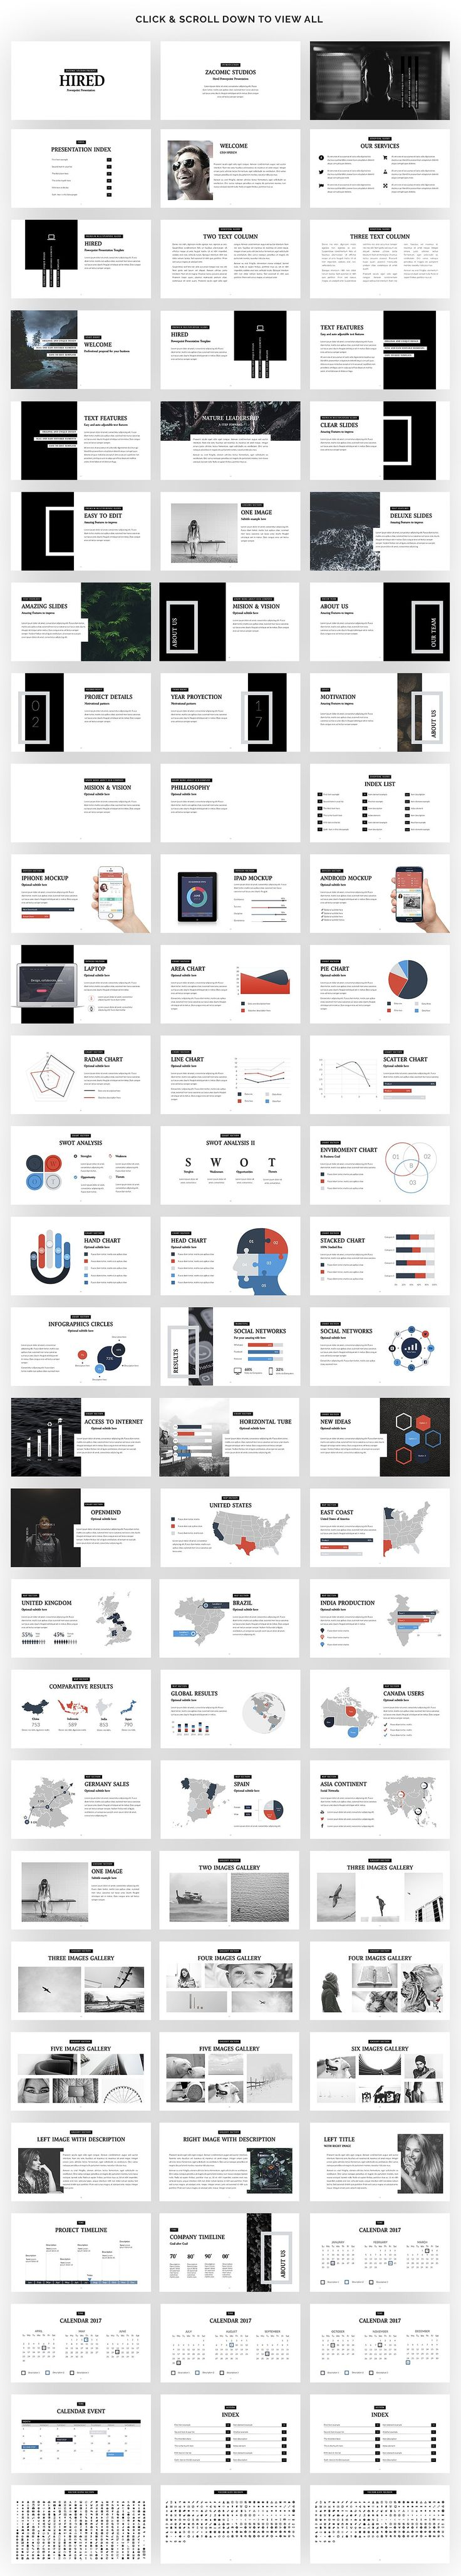 Hired   Powerpoint Presentation by Zacomic Studios on @creativemarket